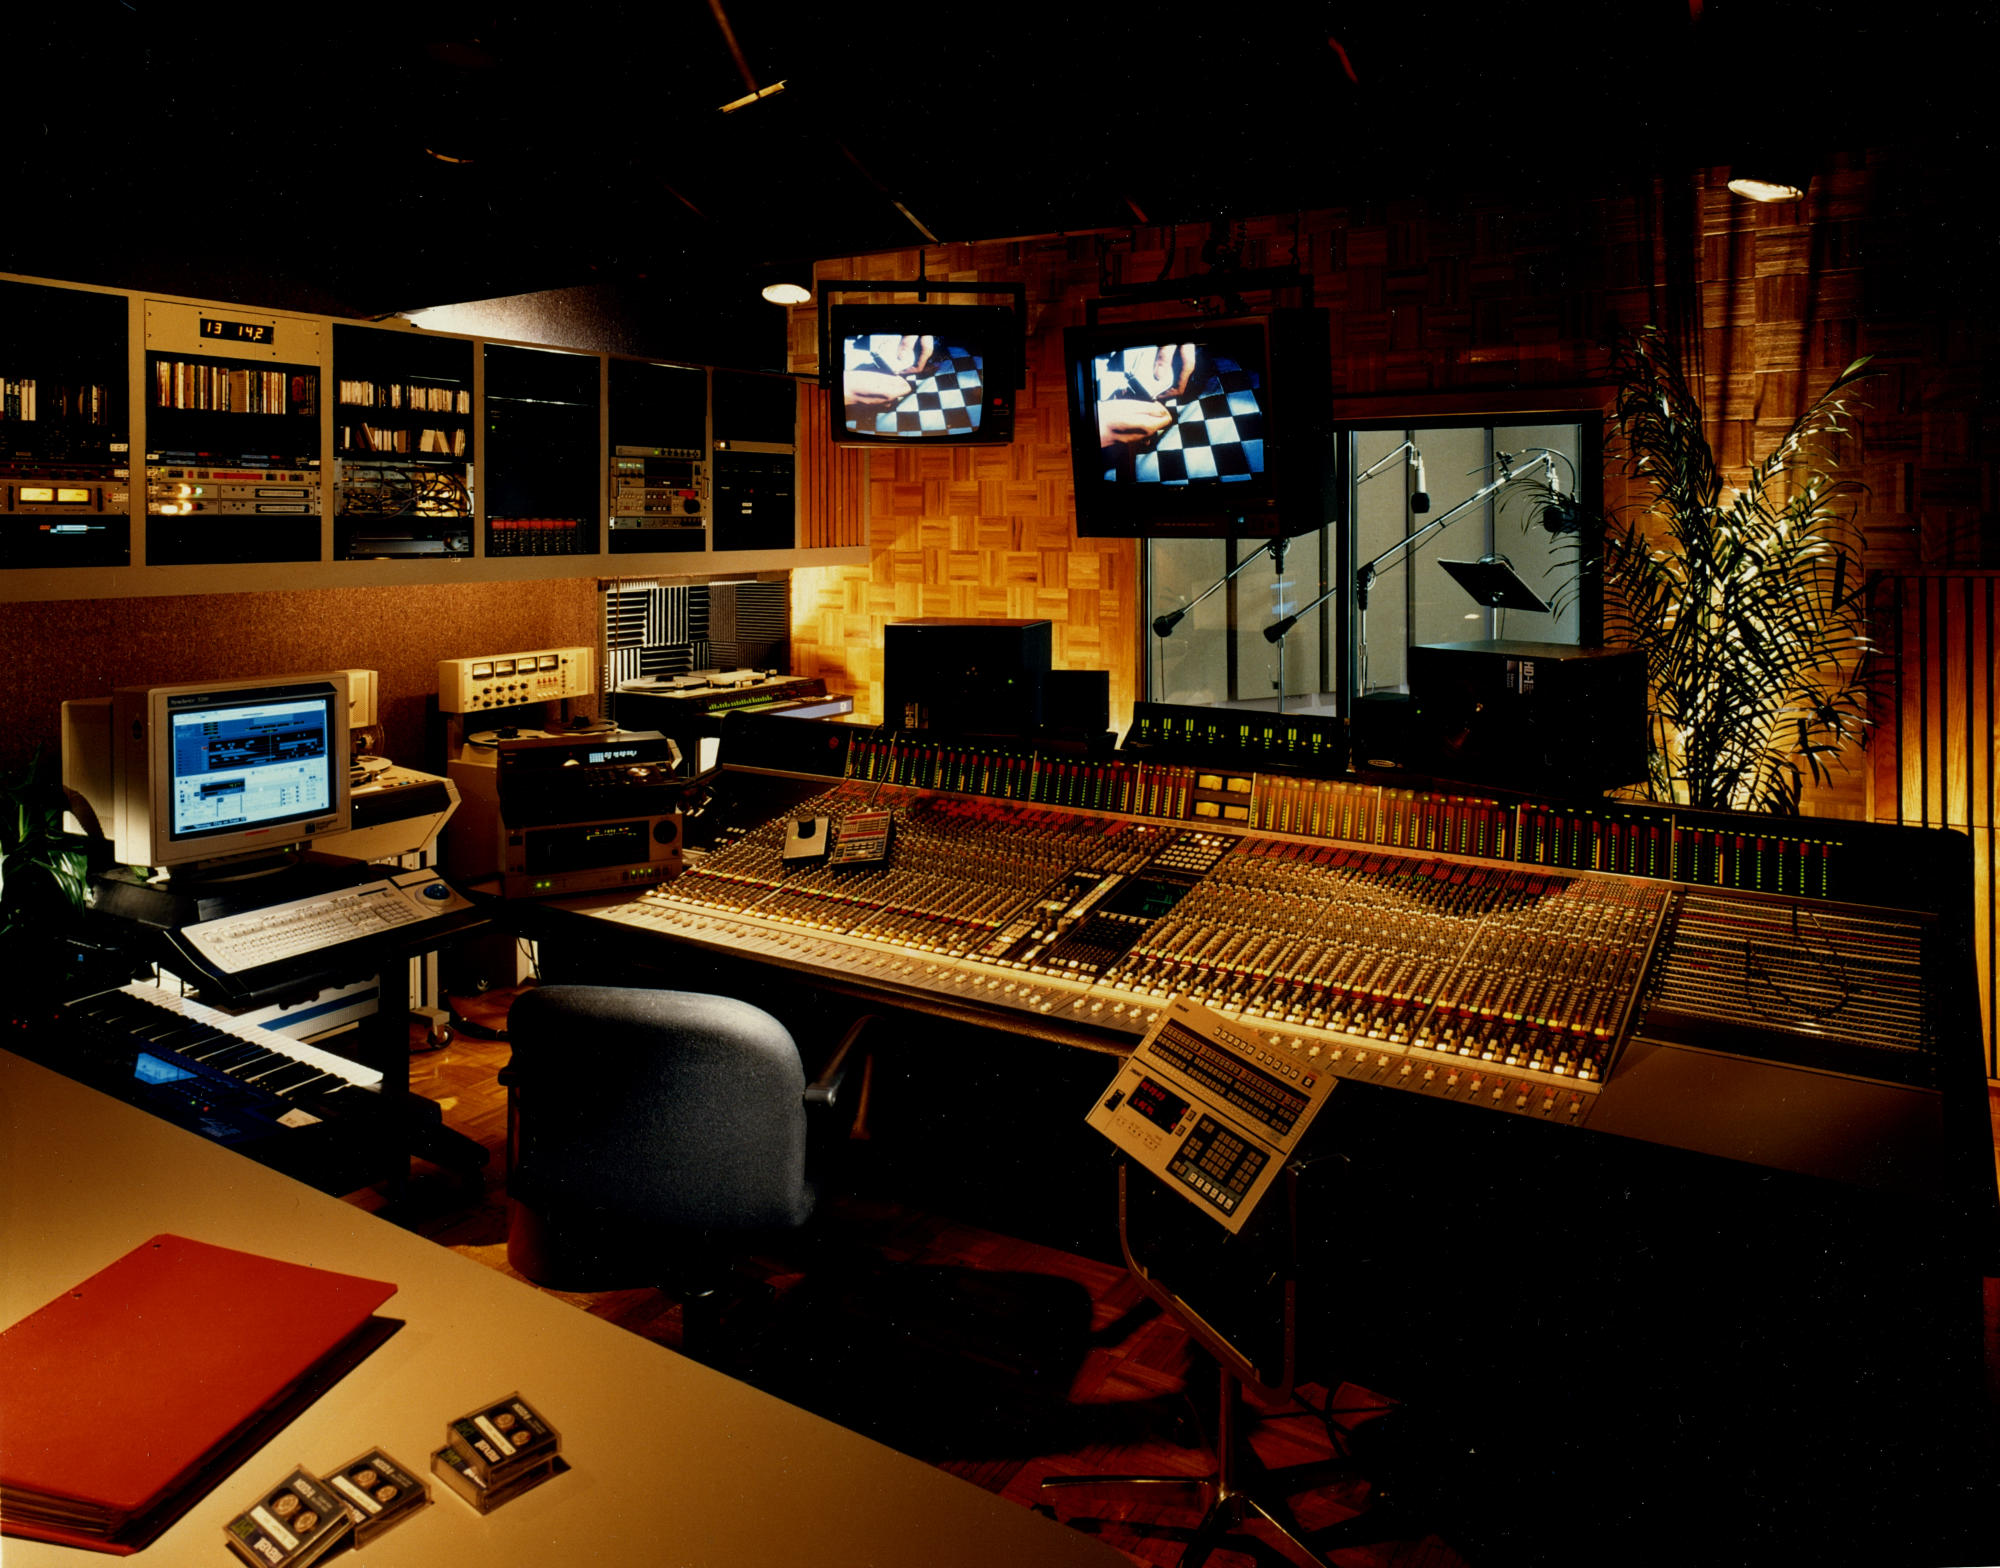 "Similar to the setup at East Side Film and Video here's my home at the time - Studio 4 at National Video Center in NYC around 1992 (where the remix for Steinski and Mass Media's ""It's Up To You"" was made). An SSL 4000 console, 32 voice 16 track Synclavier, Sony 3324 digital 24 track, Meyer HD-1 speakers and a tv monitor that lowered from a garage door opener: 0ver $600K spent here! It never fails to amaze me that I now have even more power on a Macbook Pro then I did then. Even my Ipad can do greater audio manipulation. So you can imagine how glad I am it wasn't my money spent on all that gear. It was a good time for leasing companies!"